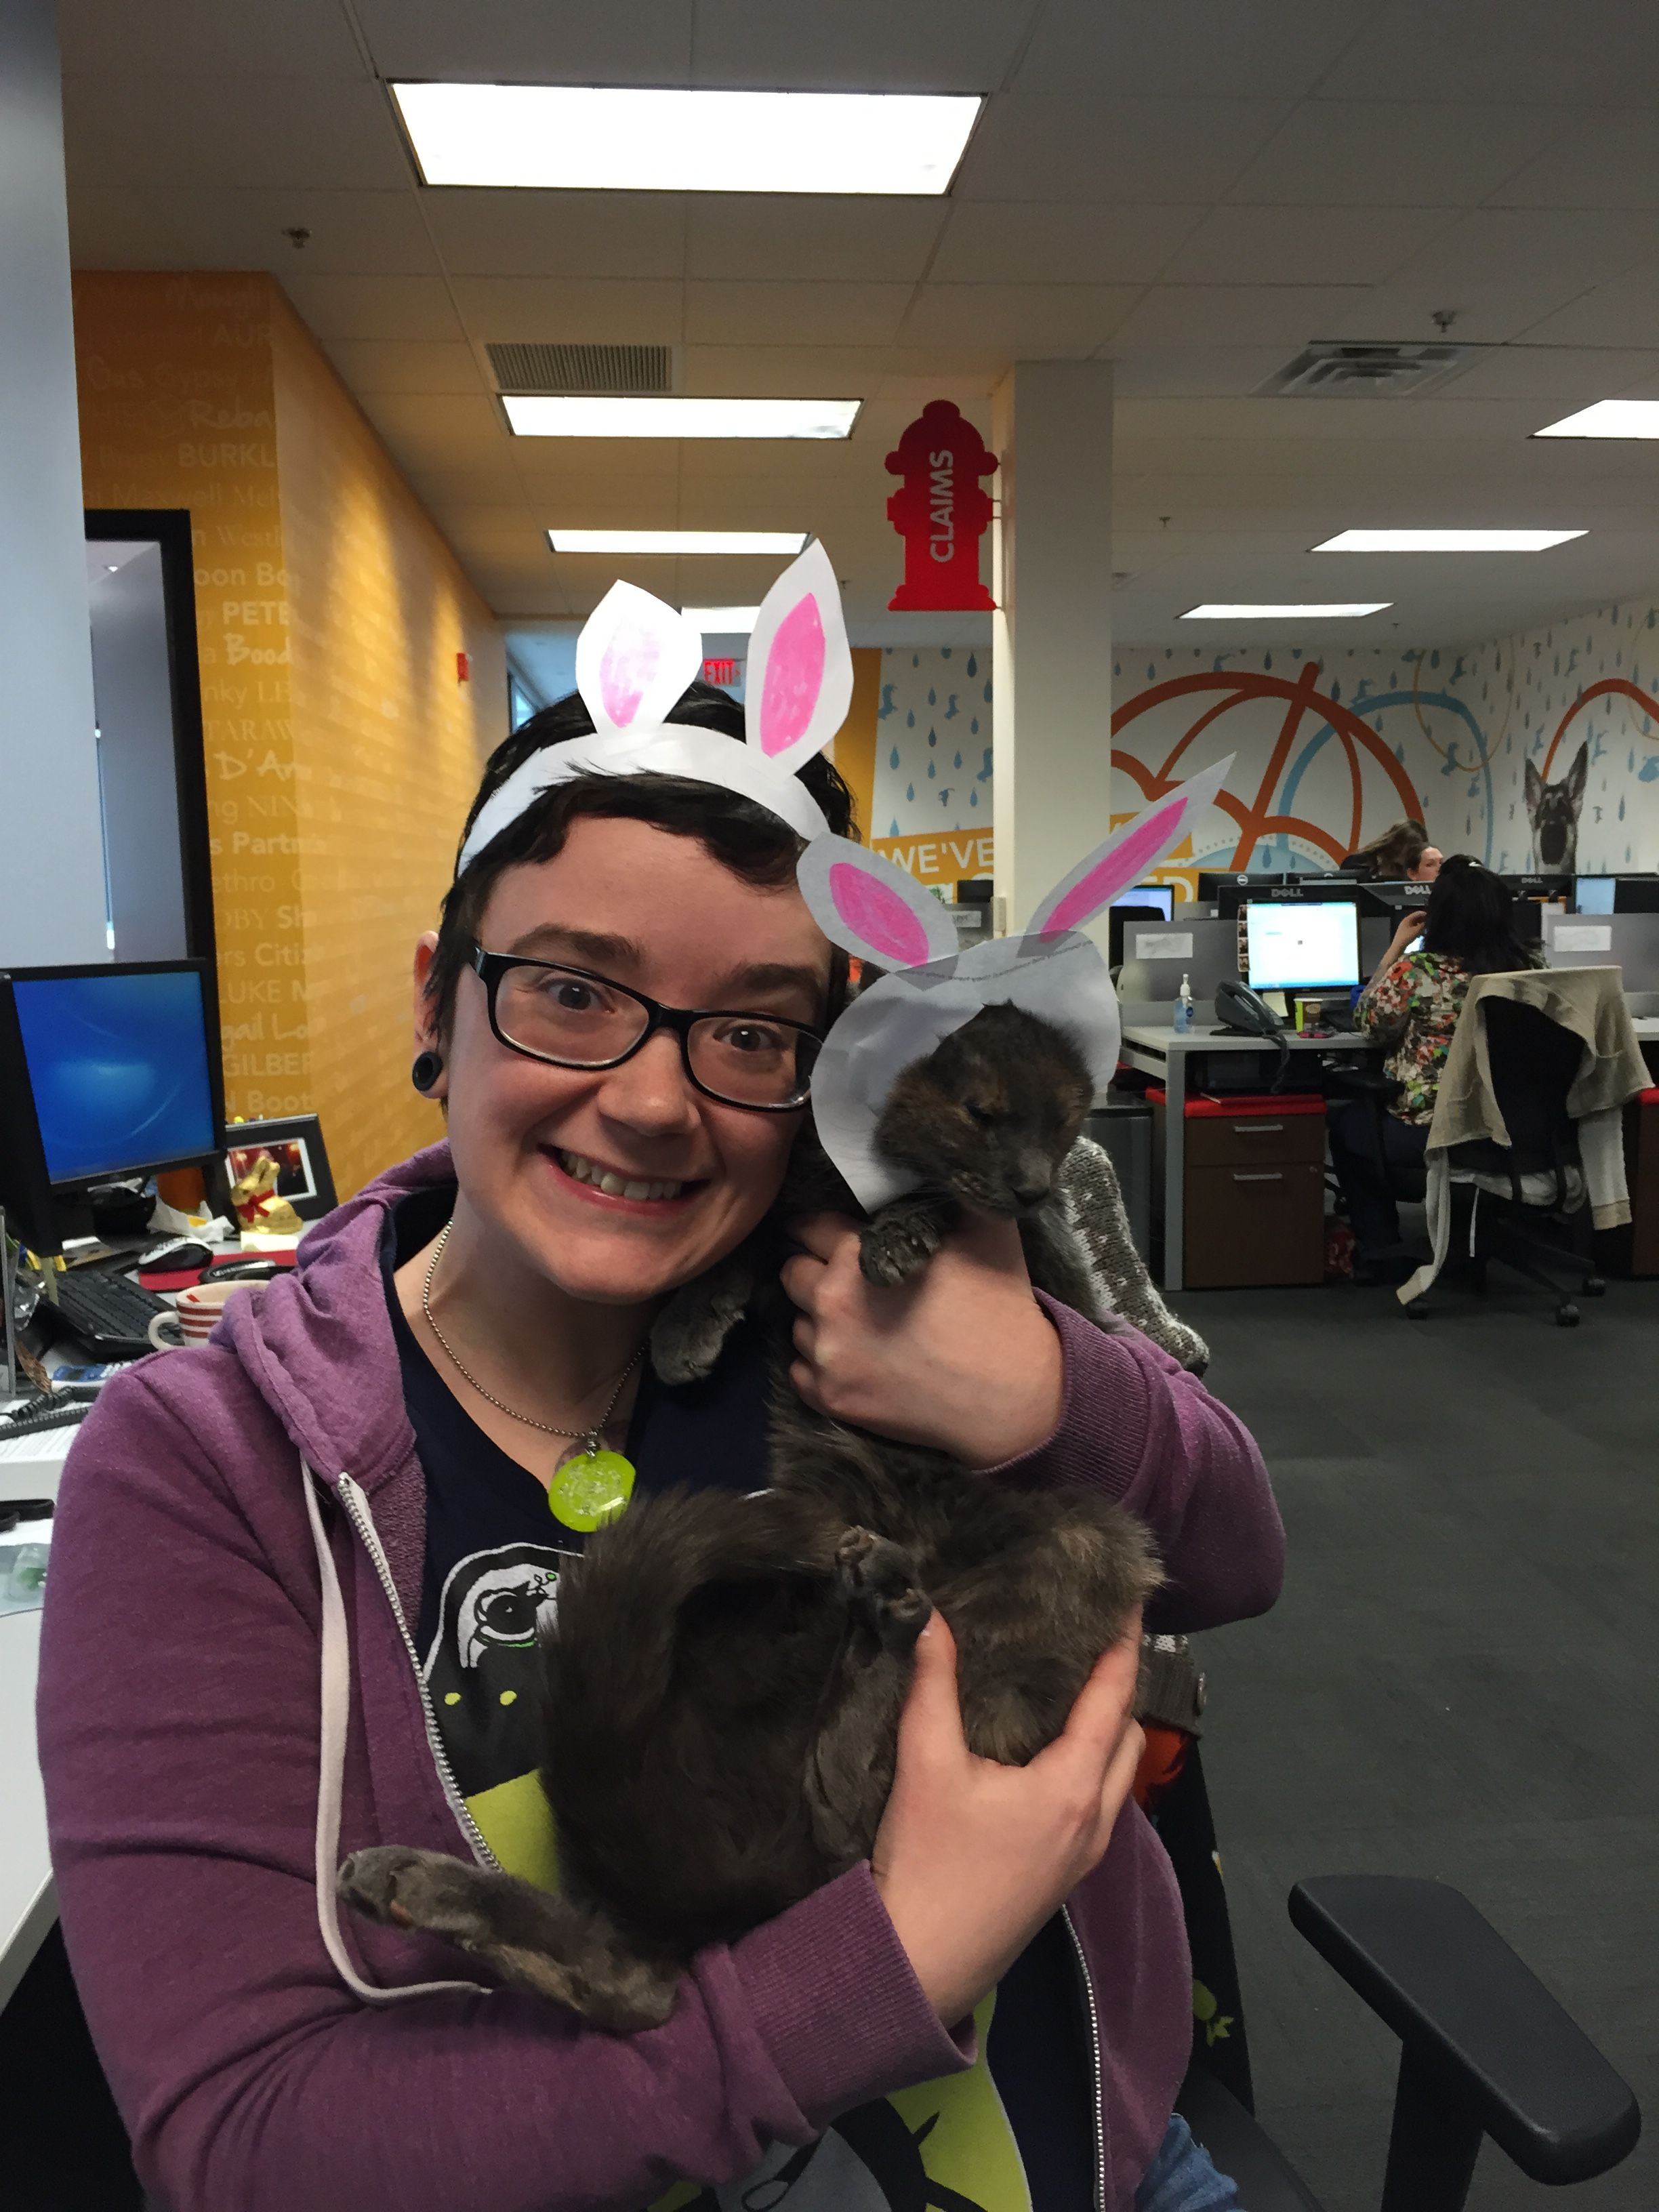 The Friday Before Easter Always Makes Us Eggstra Hoppy In The Petplan Office Kitties Too Growing Companies Pets Pet Insurance